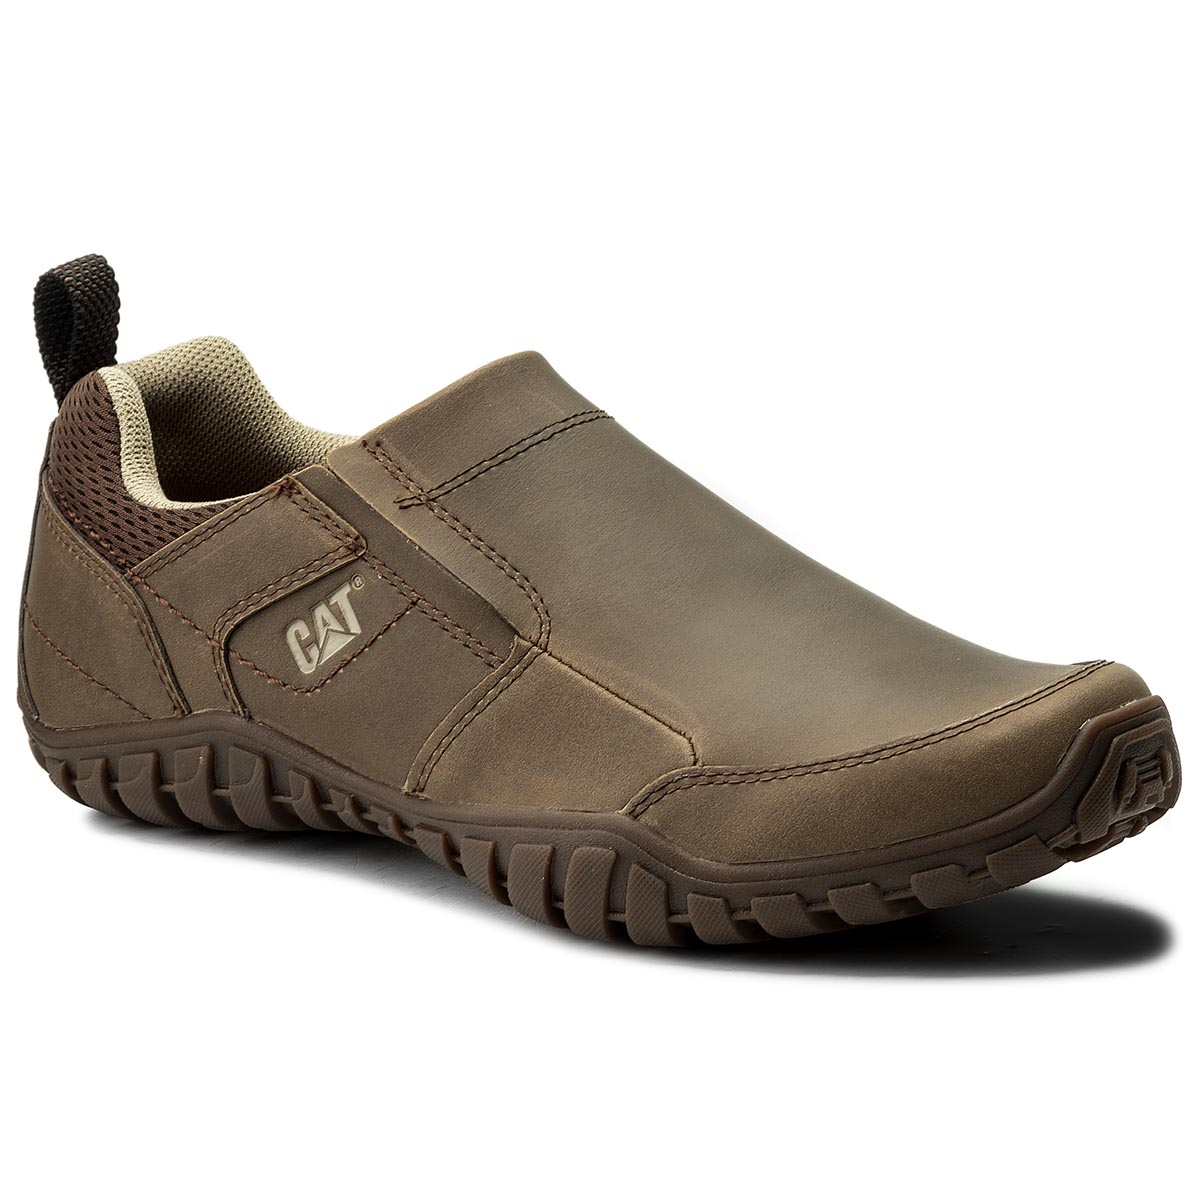 Pantofi Caterpillar - Opine P722314 Dark Beige imagine epantofi.ro